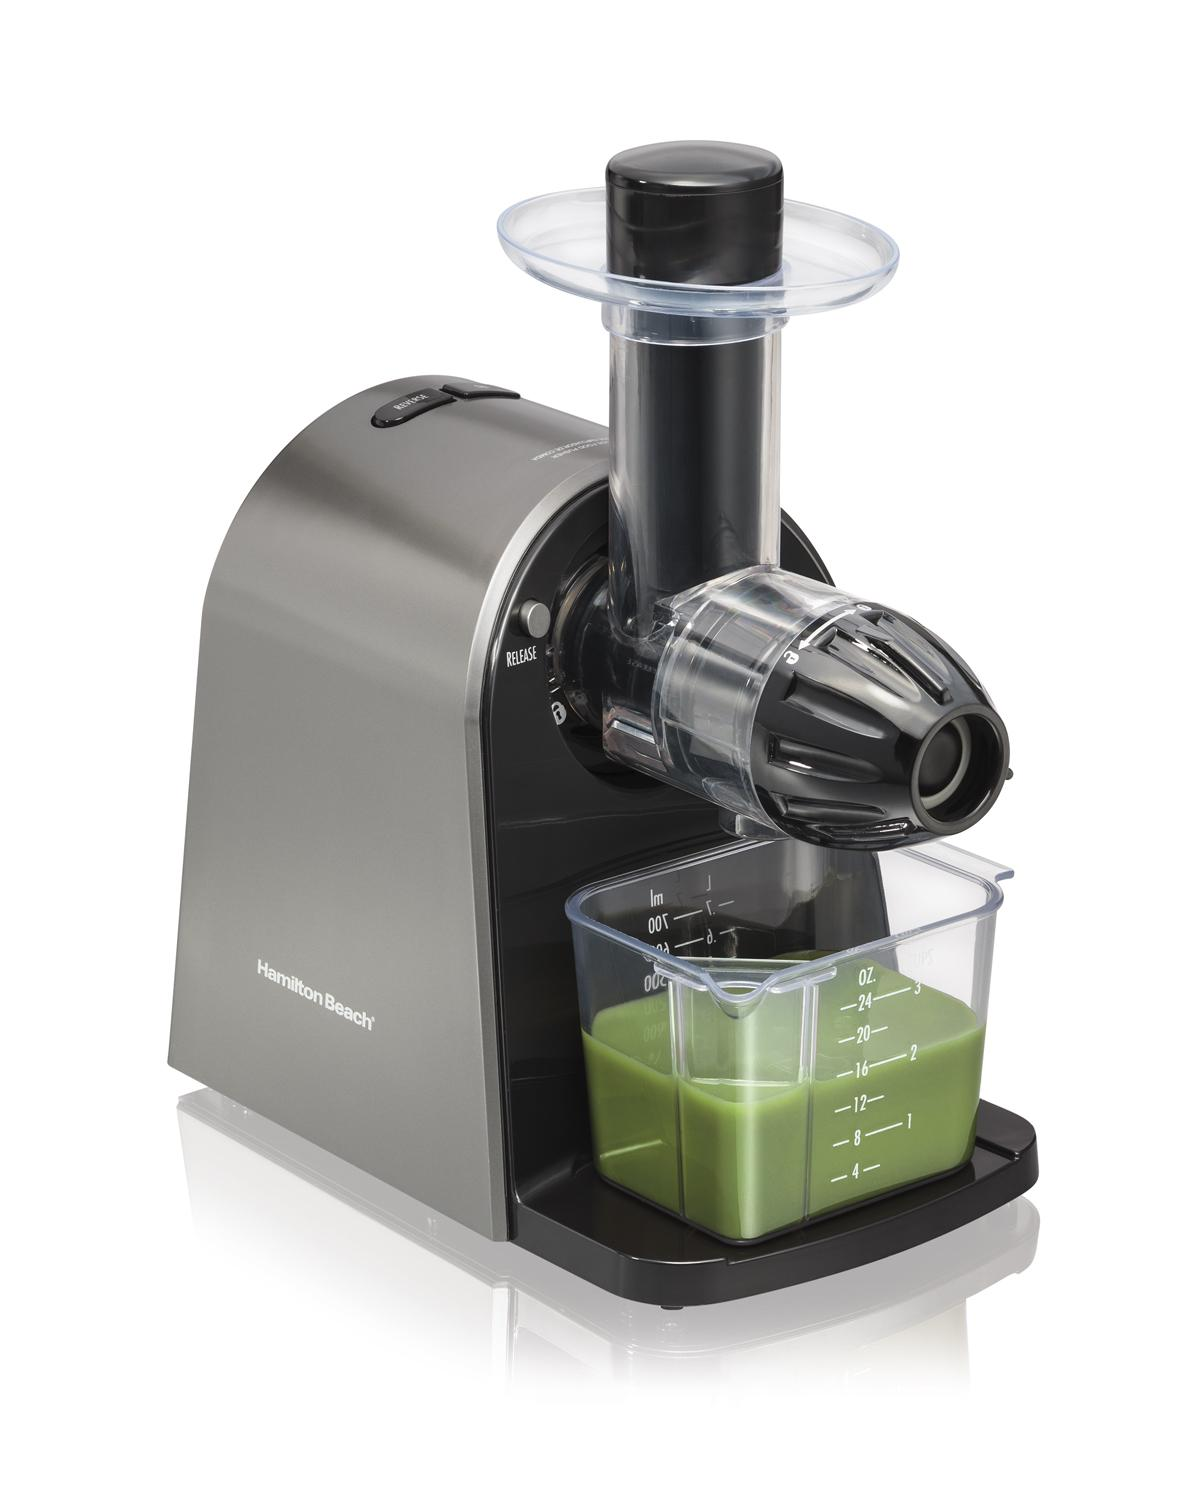 Cooksense Slow Juicer Review : juicer breville commercial cuisinart omega extractor slow juicers electric vegetable masticating